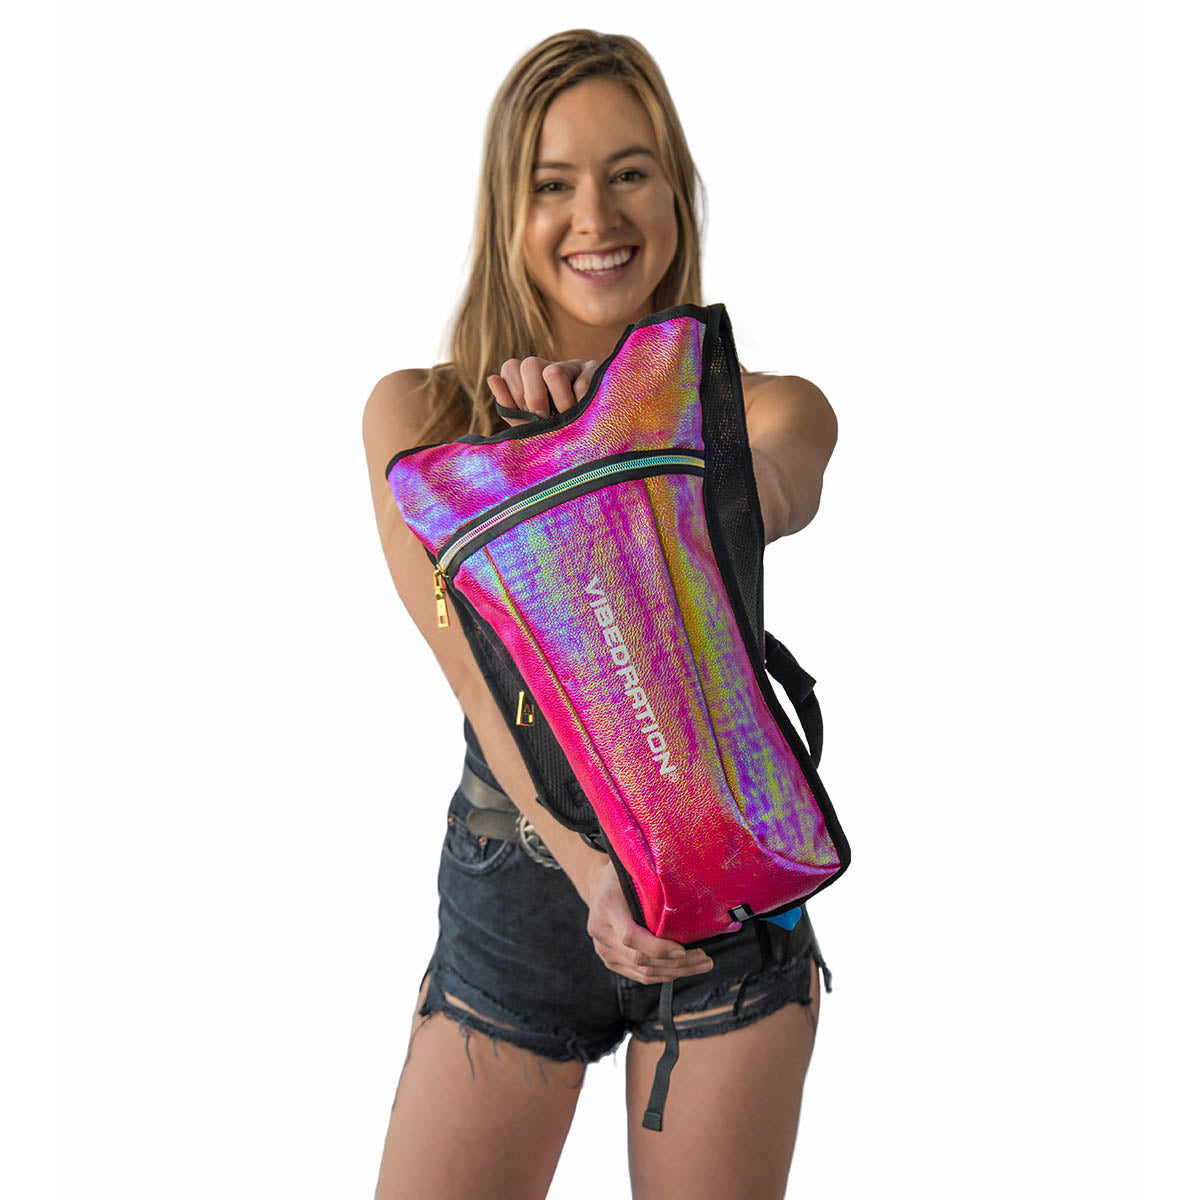 Pink shiny hydration pack for raves